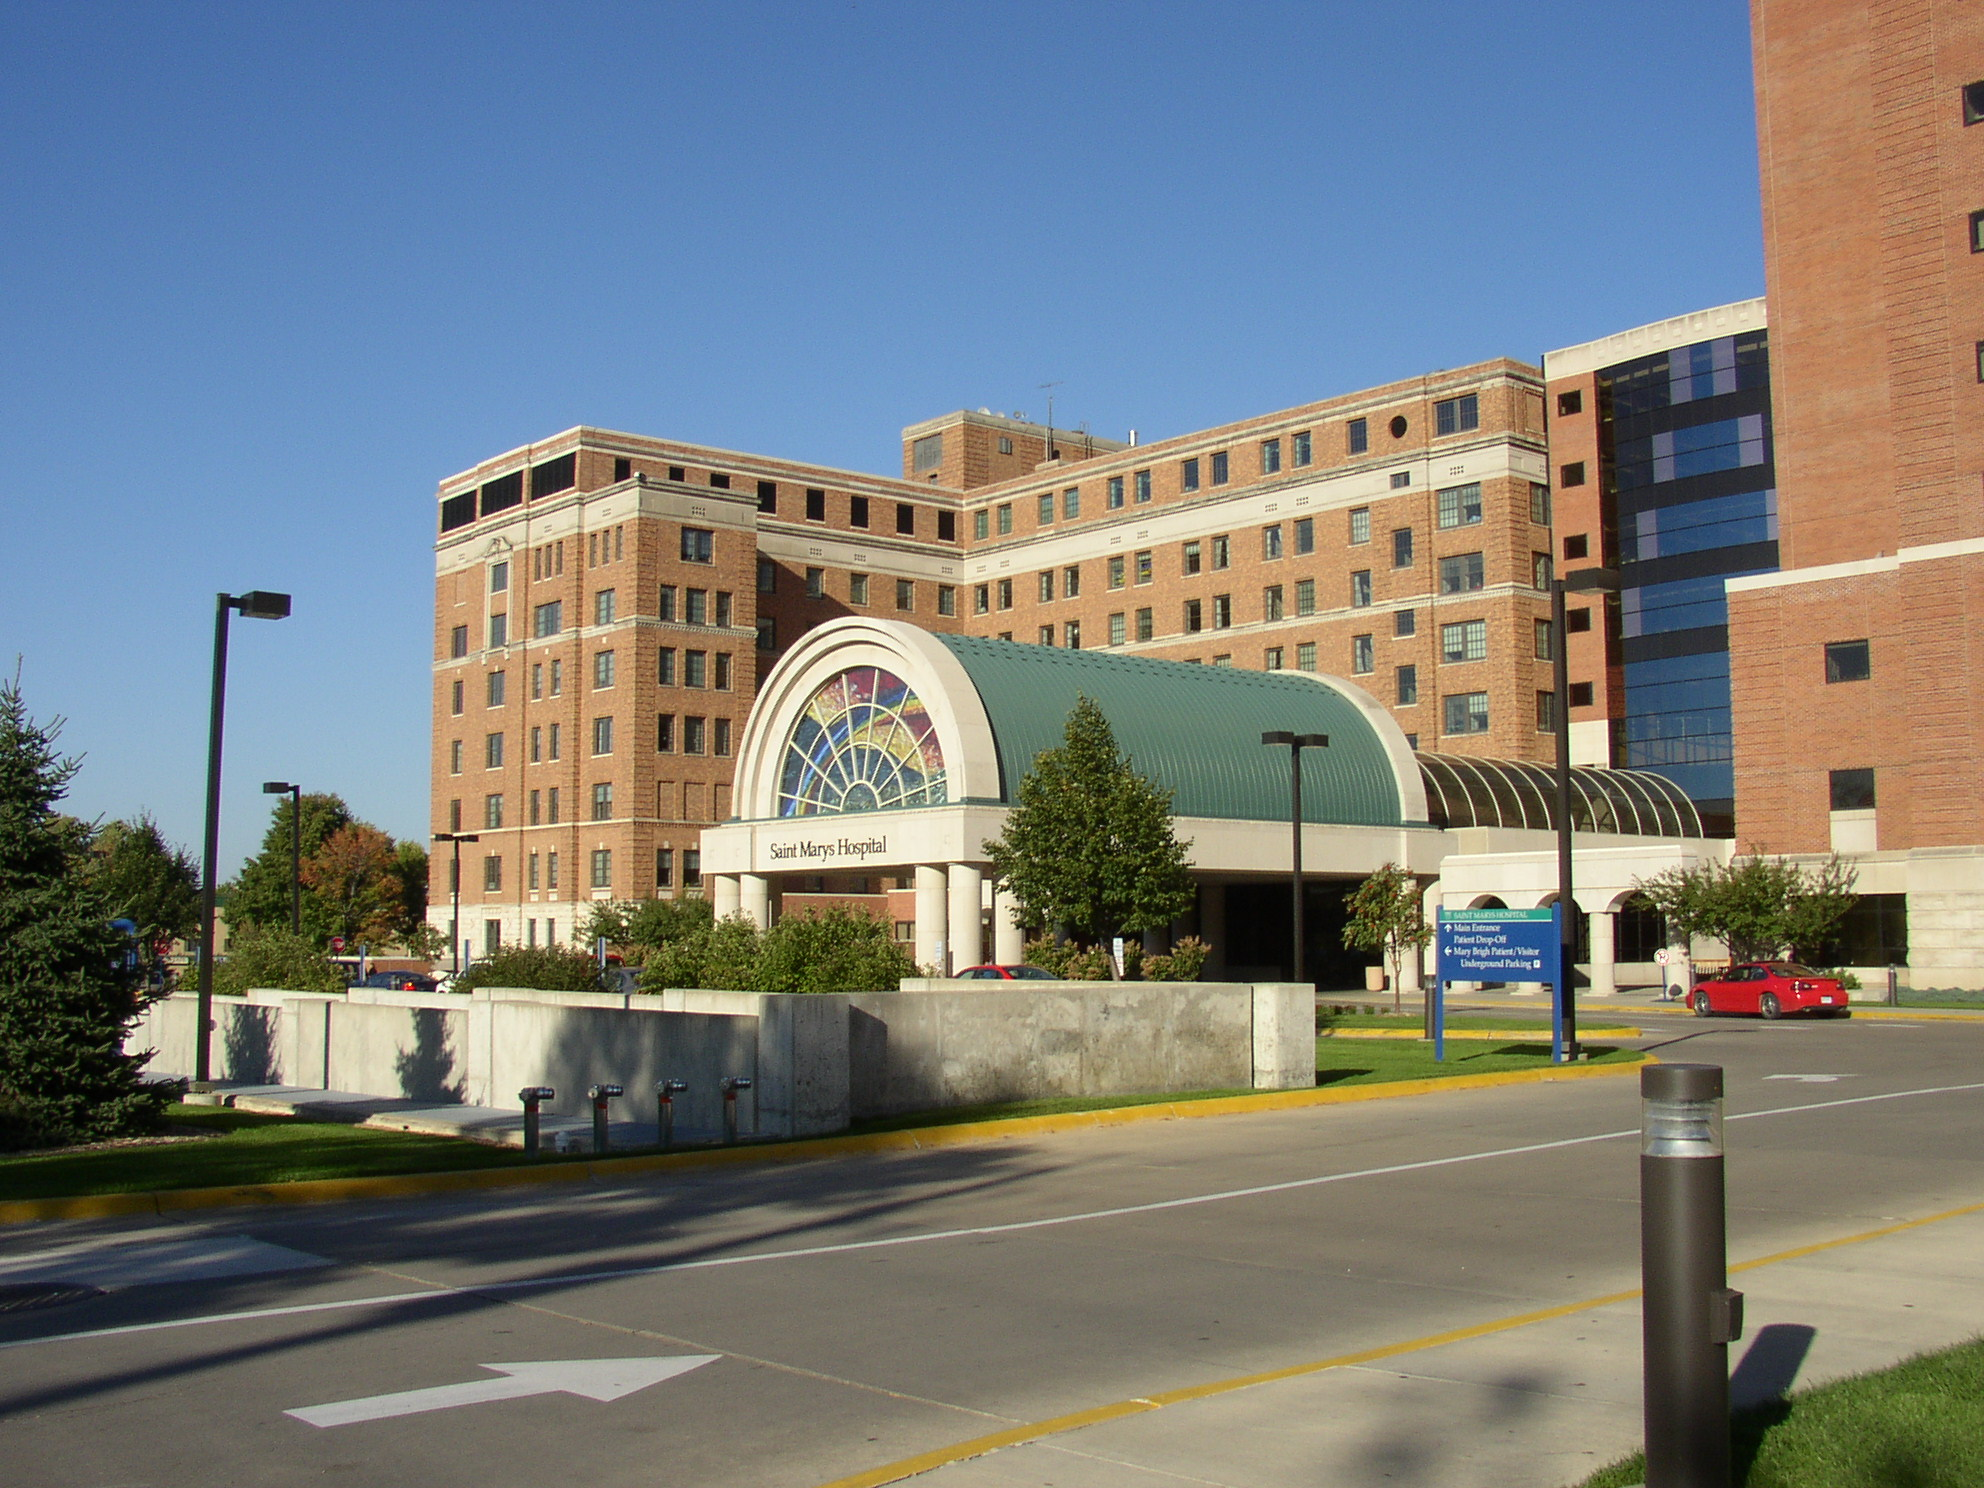 st marys hospital case Top hospital providence st mary medical center in walla walla, washington, is a regional leader in quality, safety and customer service, whether you are coming in for a simple test, are considering surgery or are welcoming a new baby into your family.